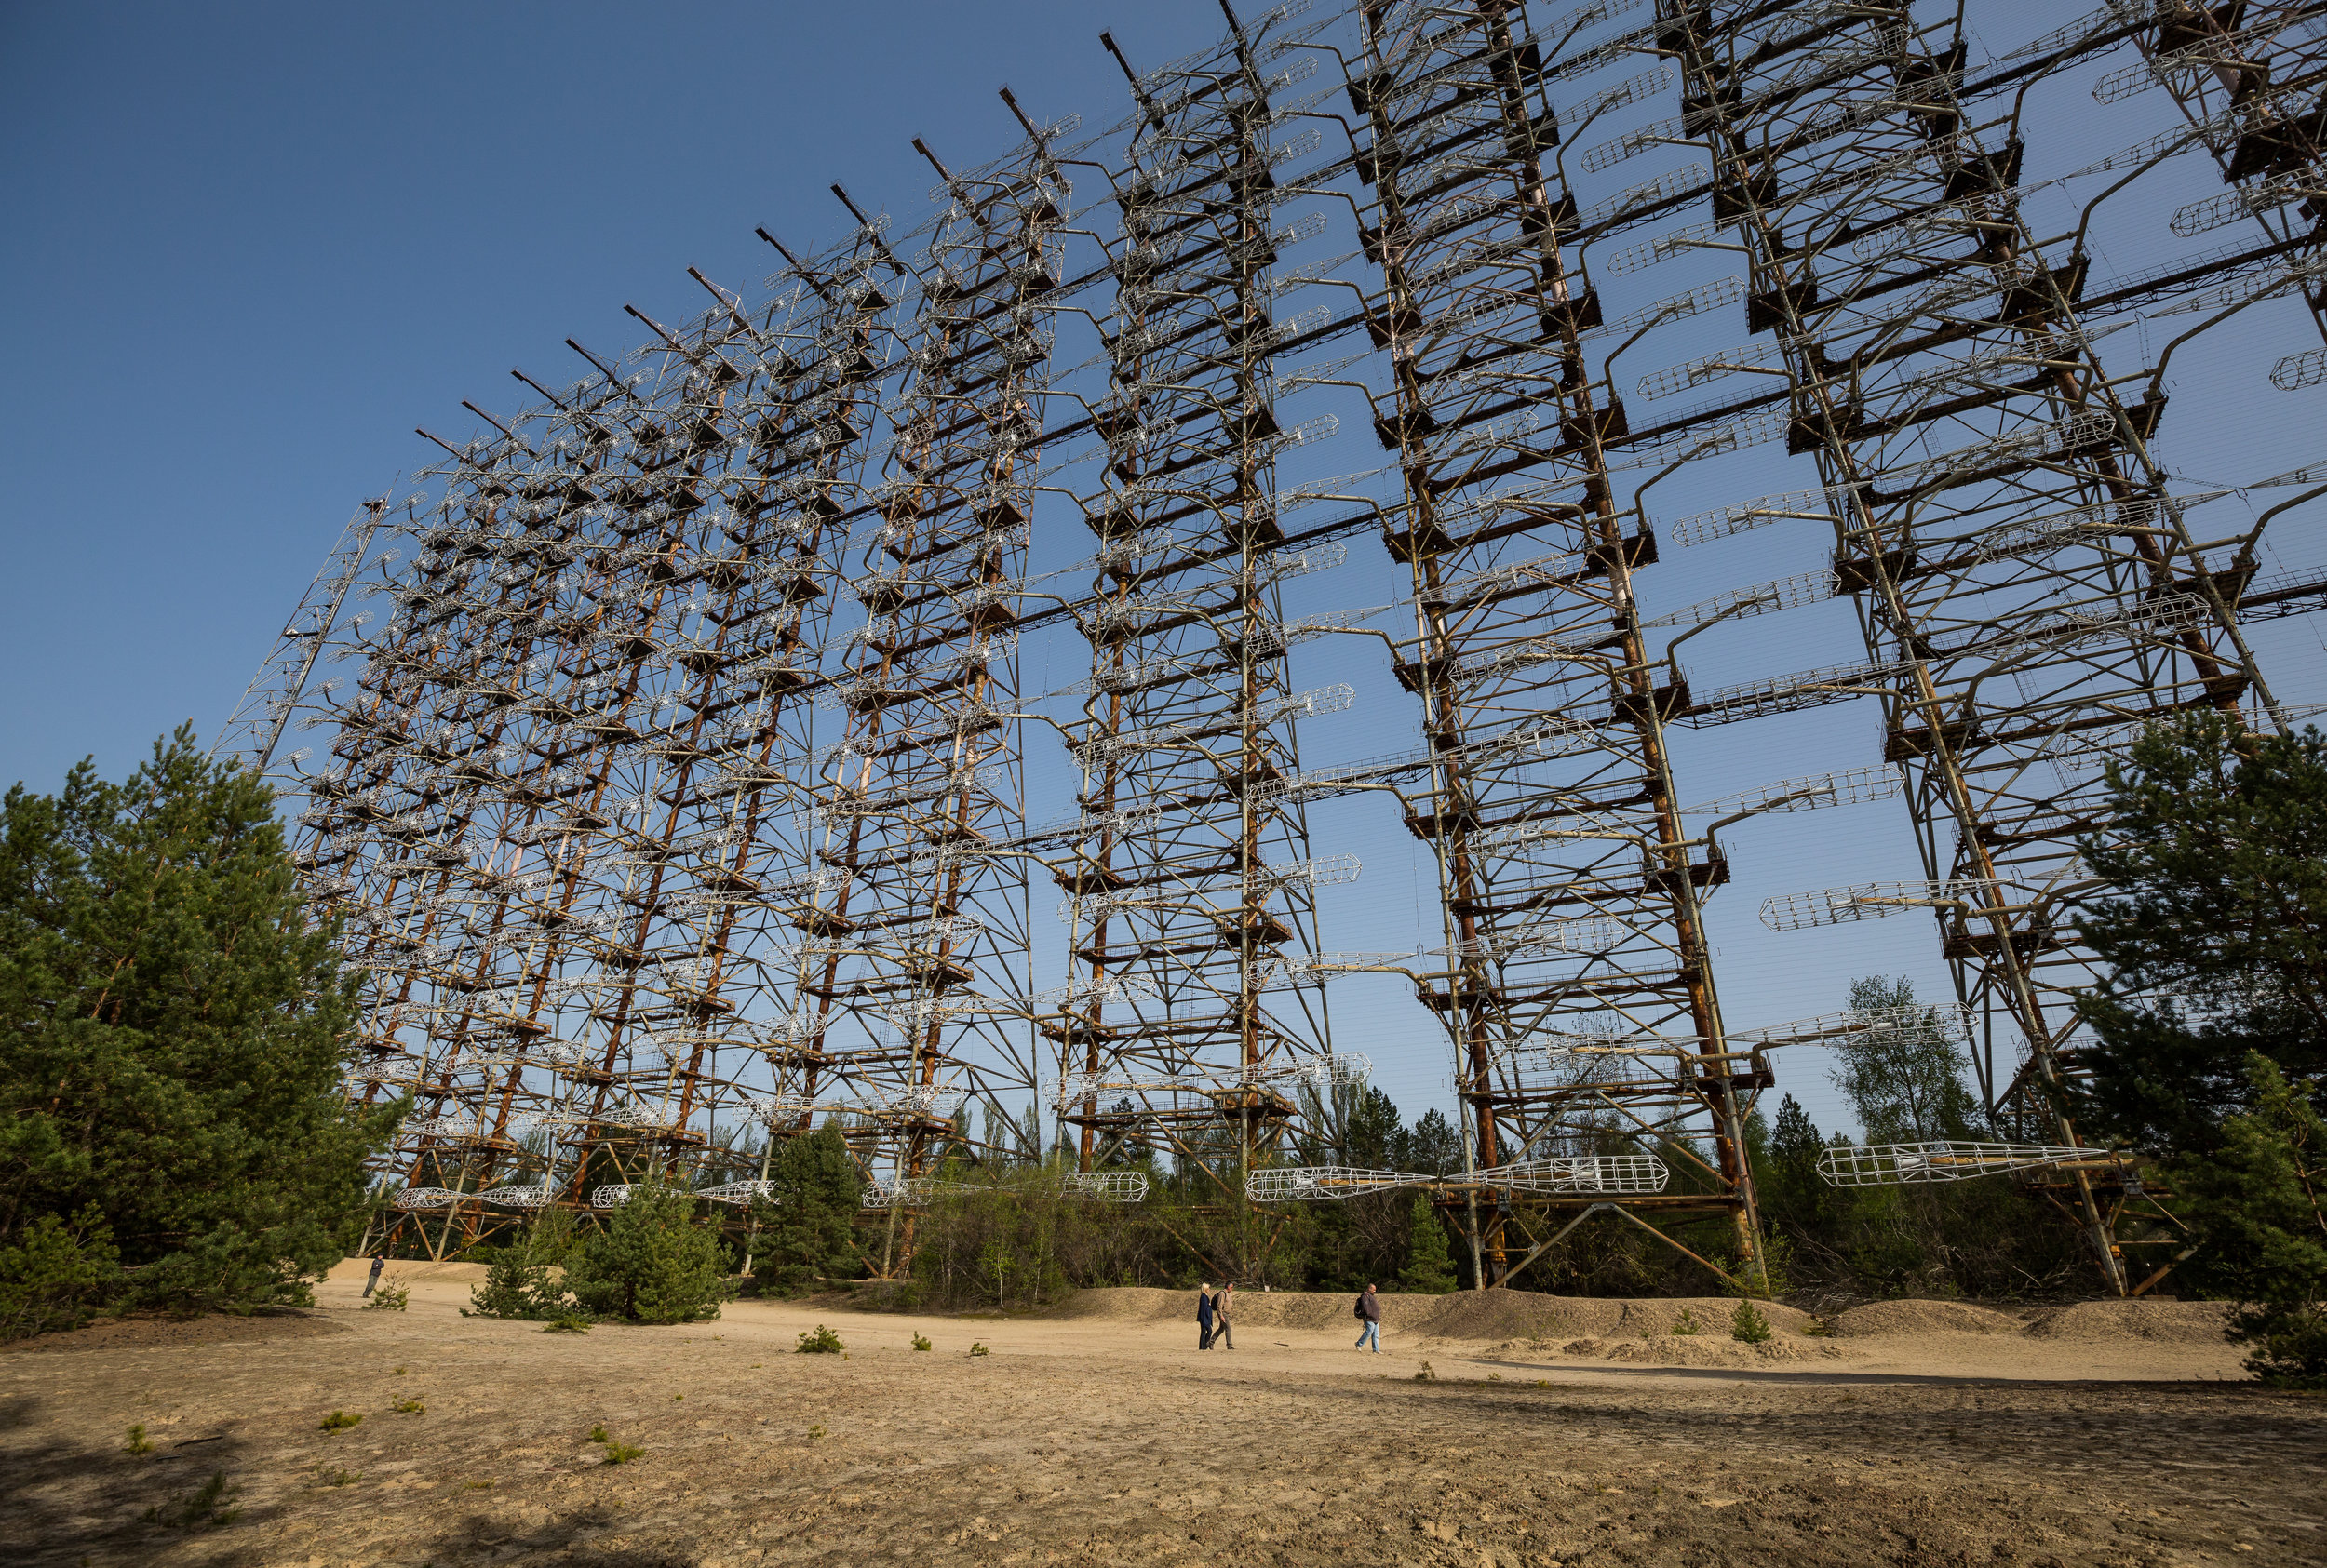 The Duga 1 radar hidden within the forests outside Chernobyl. It was one of two radars deployed and part of the Soviet missile defense early-warning radar network. Nicknamed the Russian Woodpecker for the repetitive tapping noise that it made at 10 Hz.